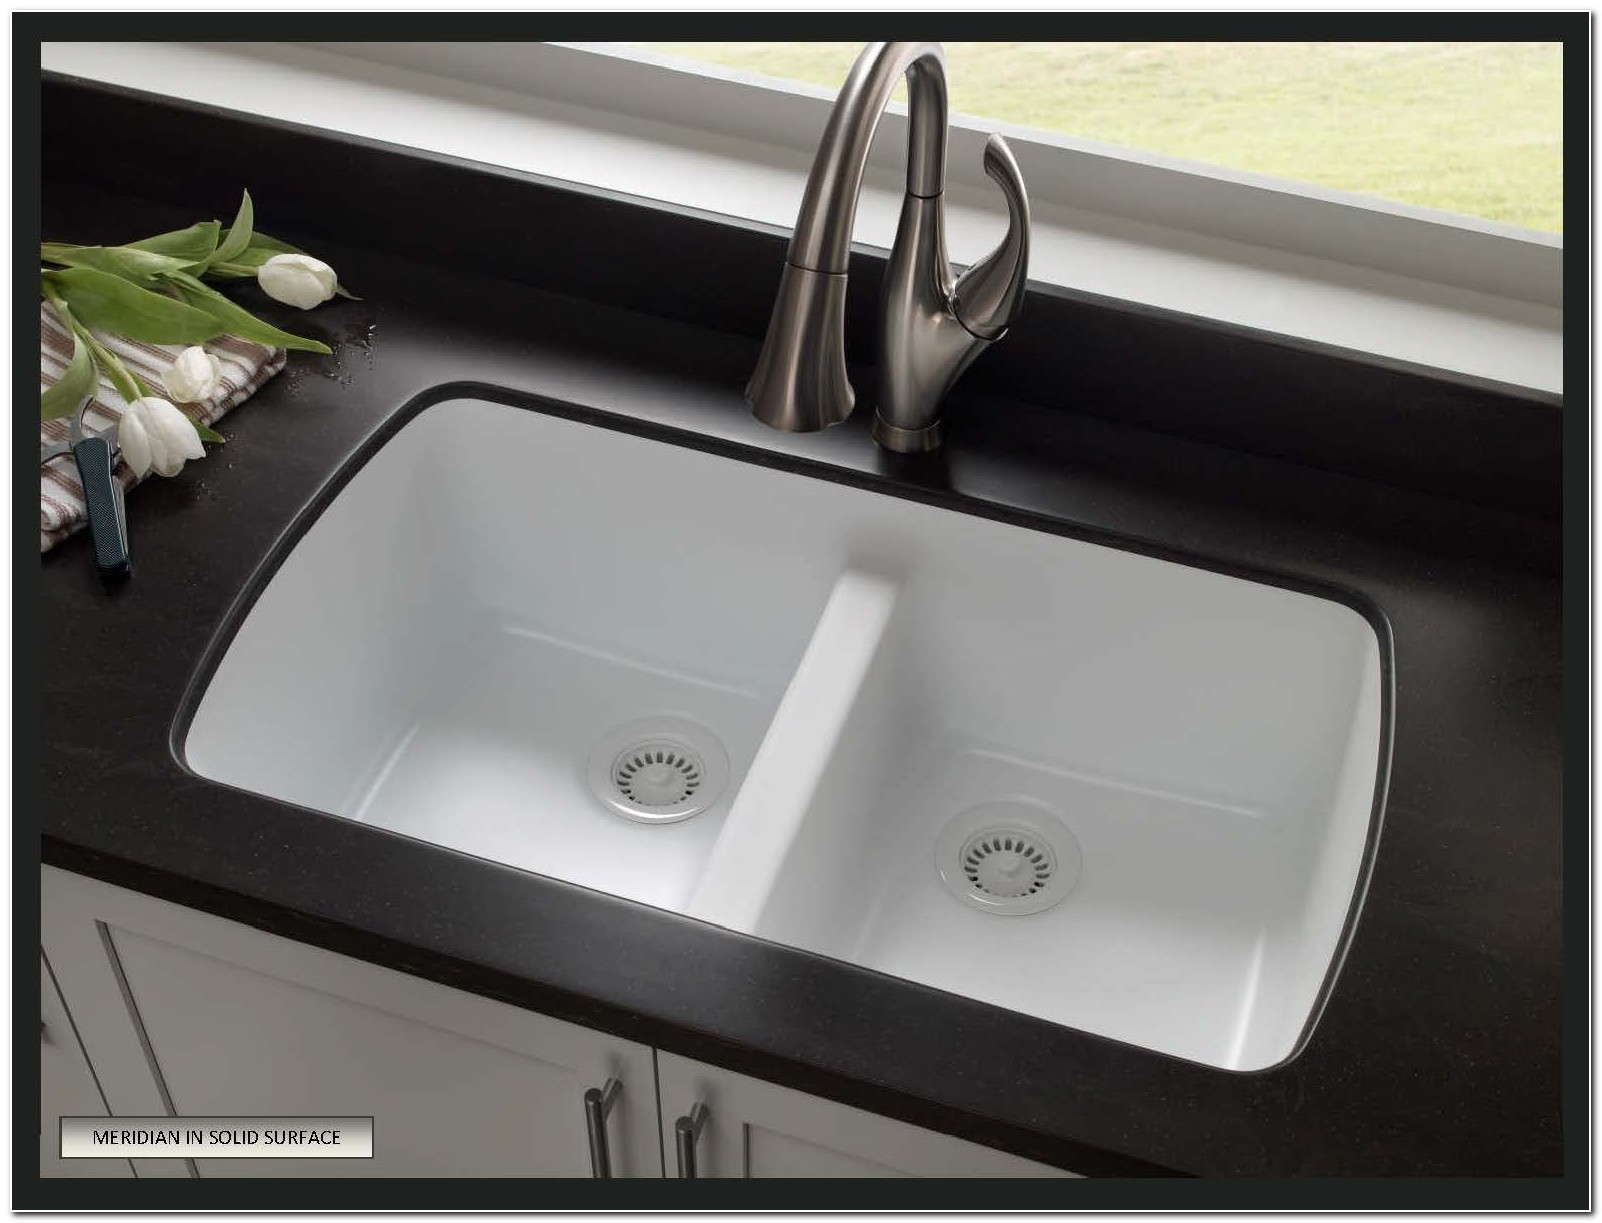 Formica Solid Surface Undermount Sinks